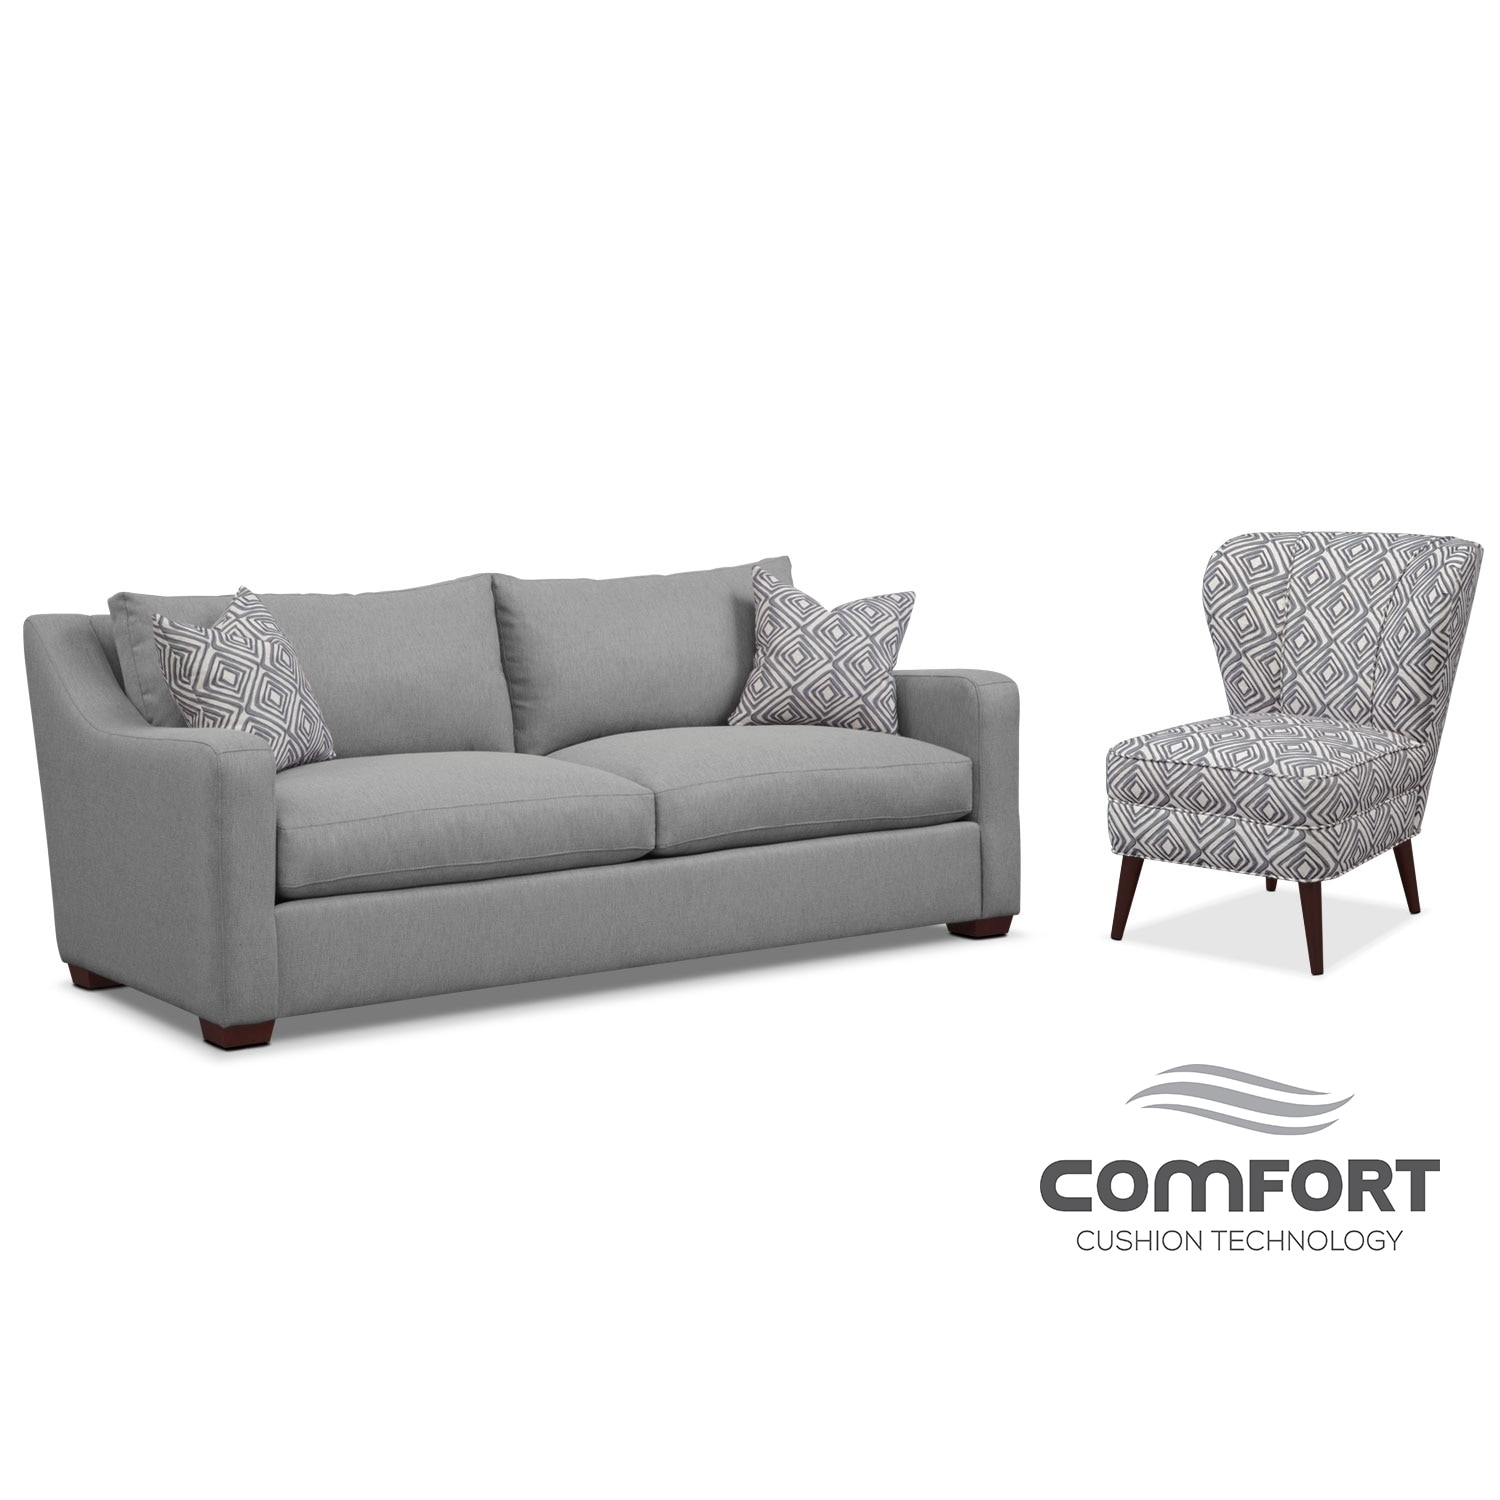 Living Room Furniture - Jules Comfort Sofa and Accent Chair Set- Gray